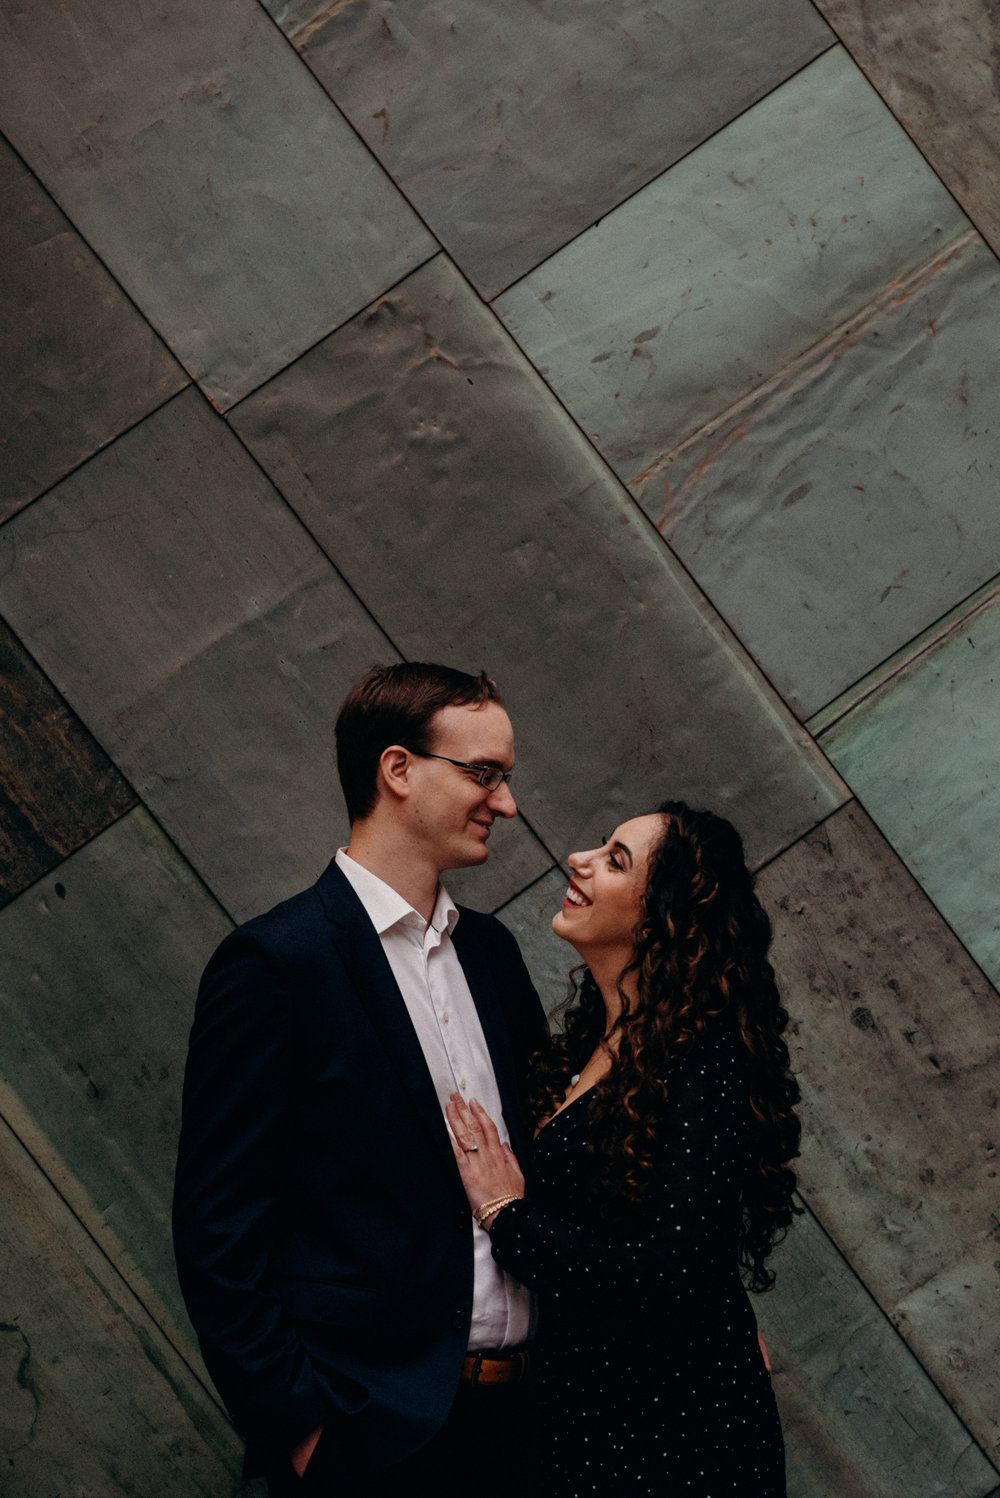 War Museum Engagement Picture Mocha Tree Studios Ottawa Toronto Montreal Wedding and Engagement Photographer and Videographer Dark Moody Intimate Authentic Modern Romantic Cinematic Best Candid 2